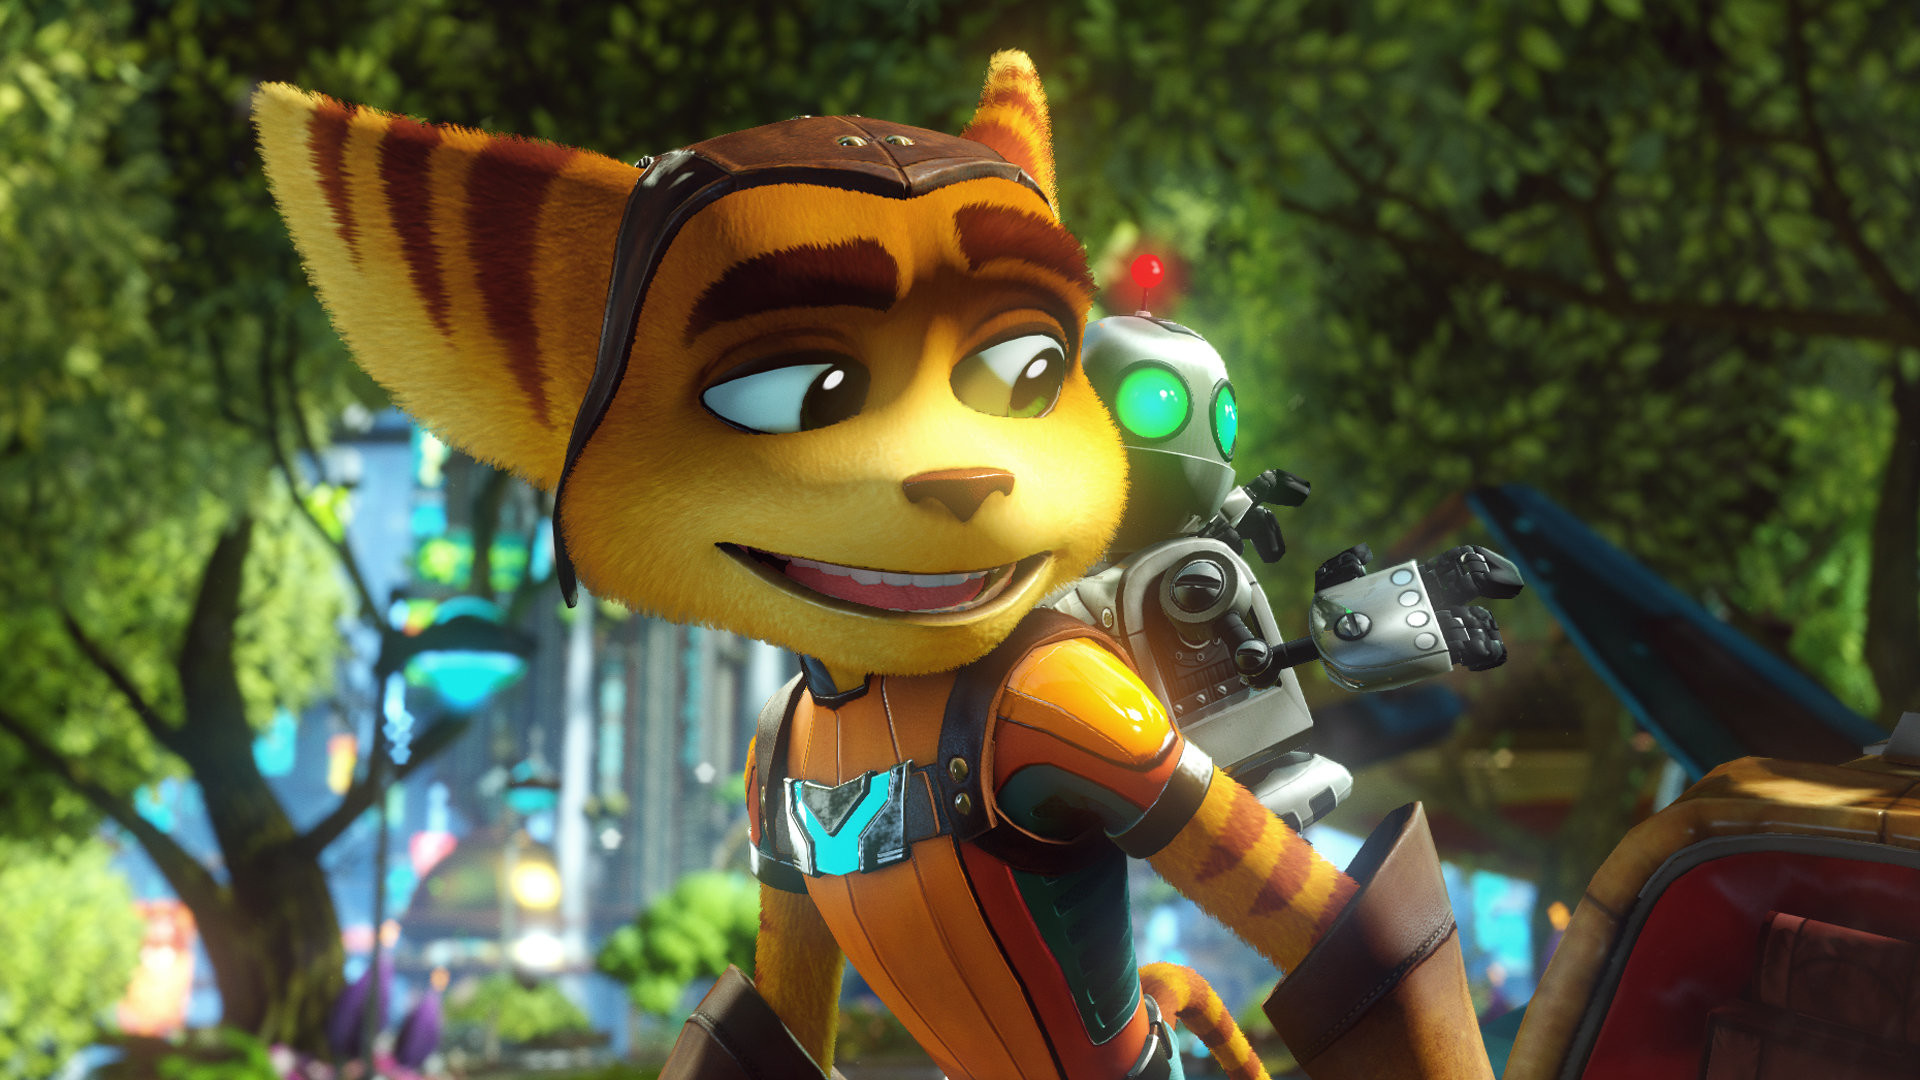 Ratchet & Clank, Star Fox Zero, and Quantum Break are 3 Reasons to be  Excited for April Gaming